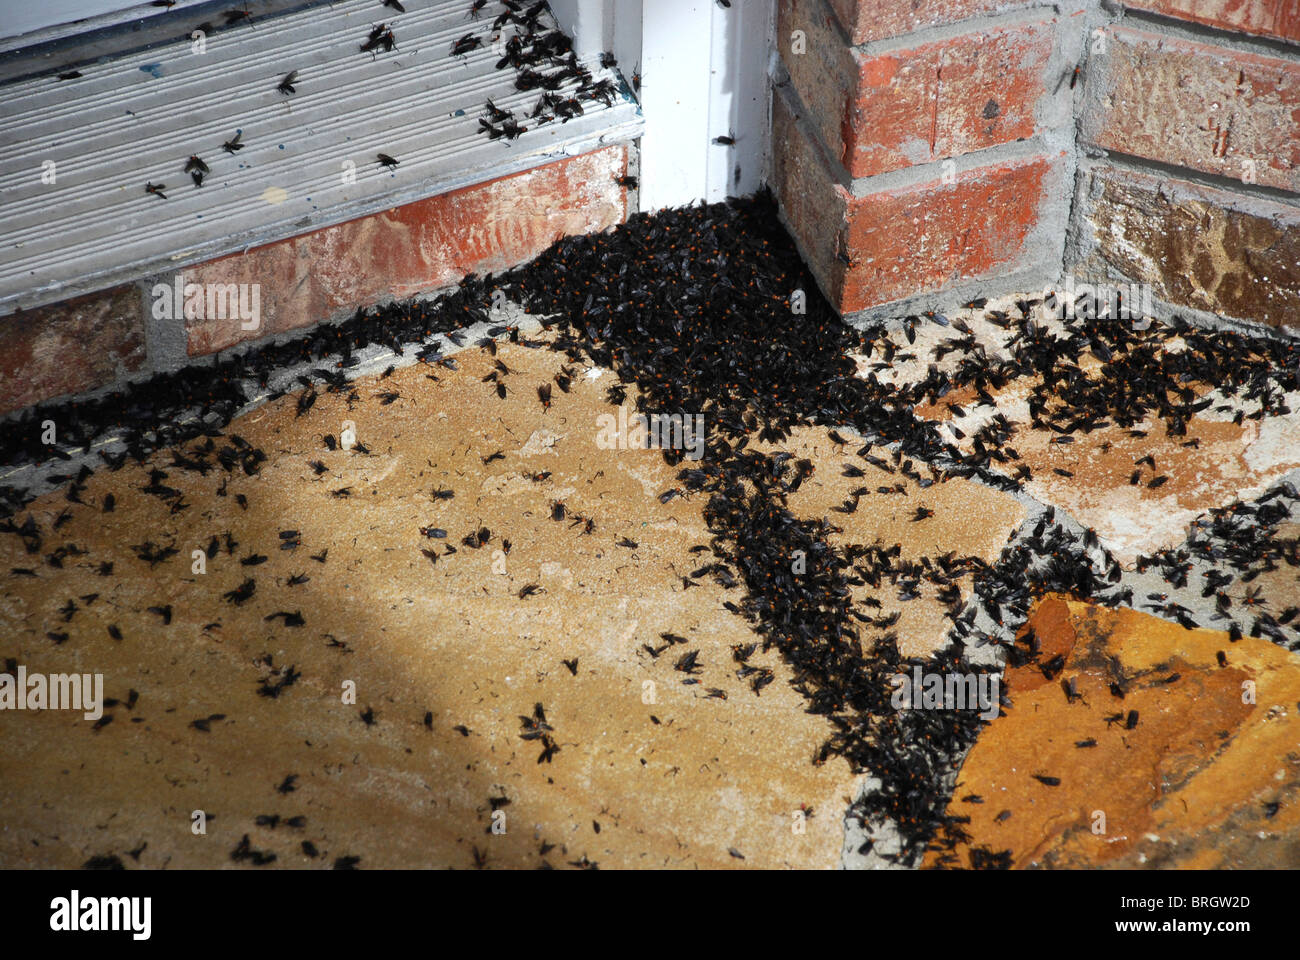 Lovebugs on the front door threshold at a home in Central Florida - Stock Image